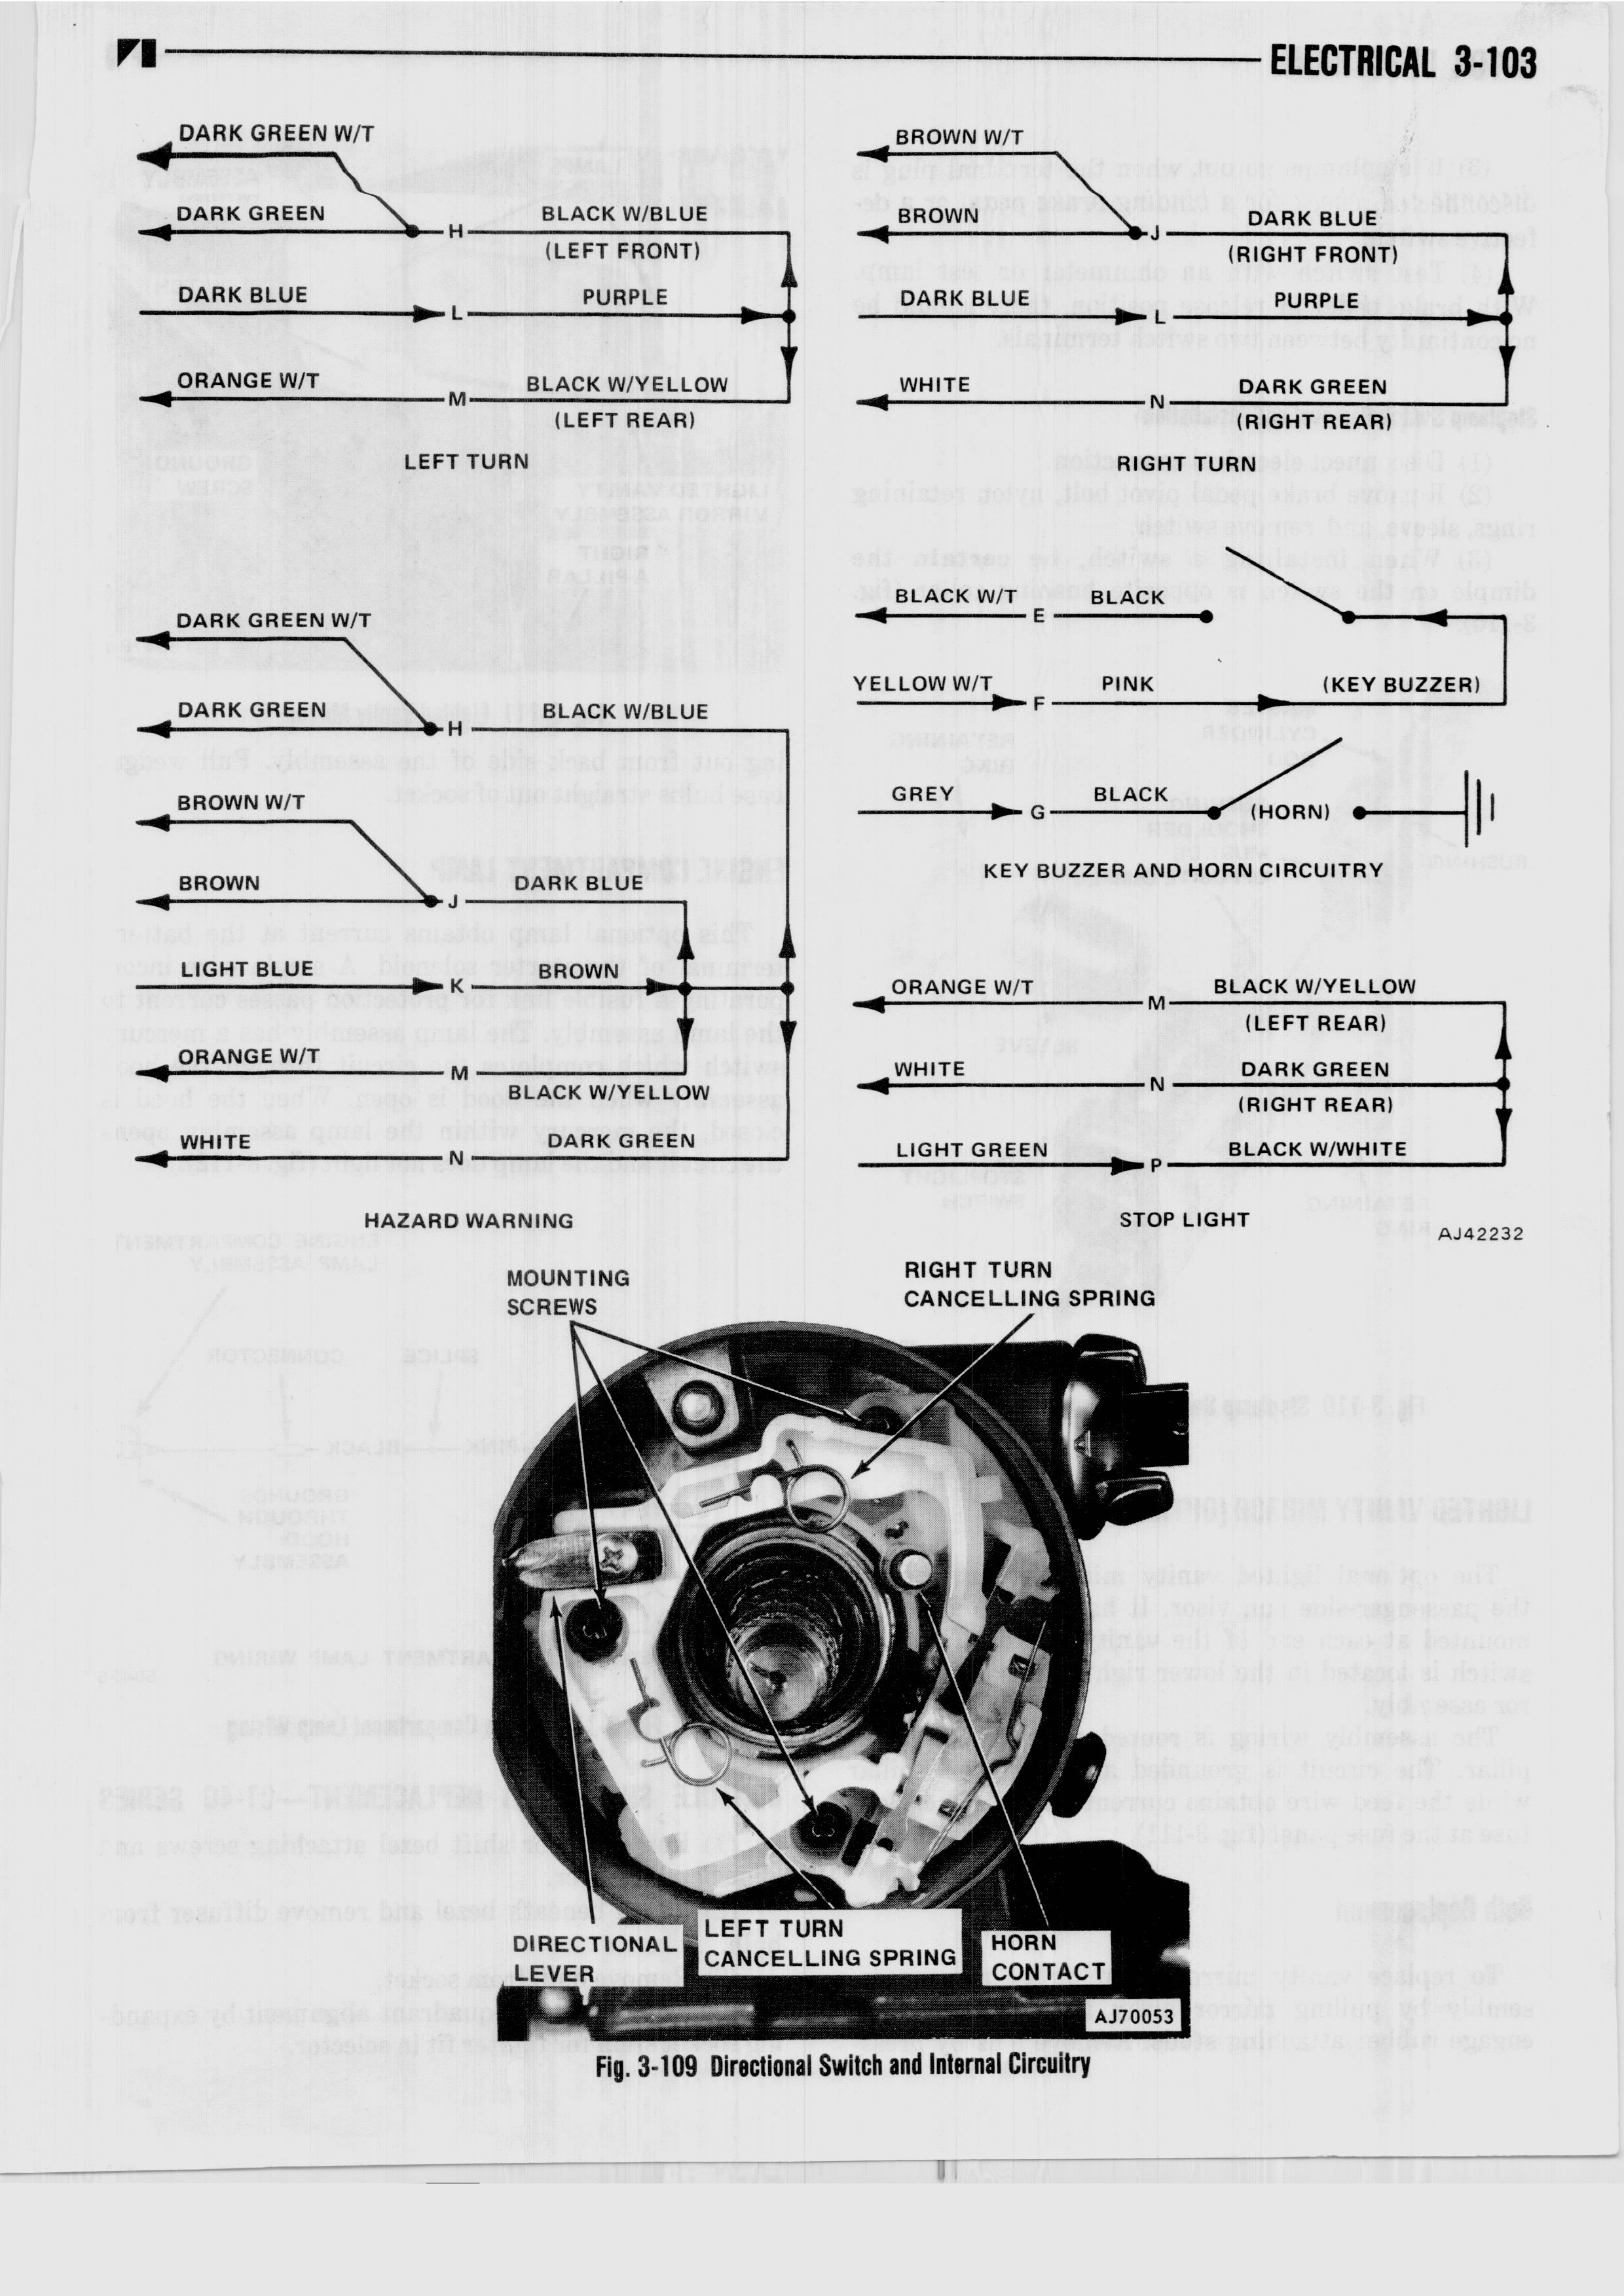 3 Electrical / 1976 AMC Technical Service Manual_Page_217.jpg